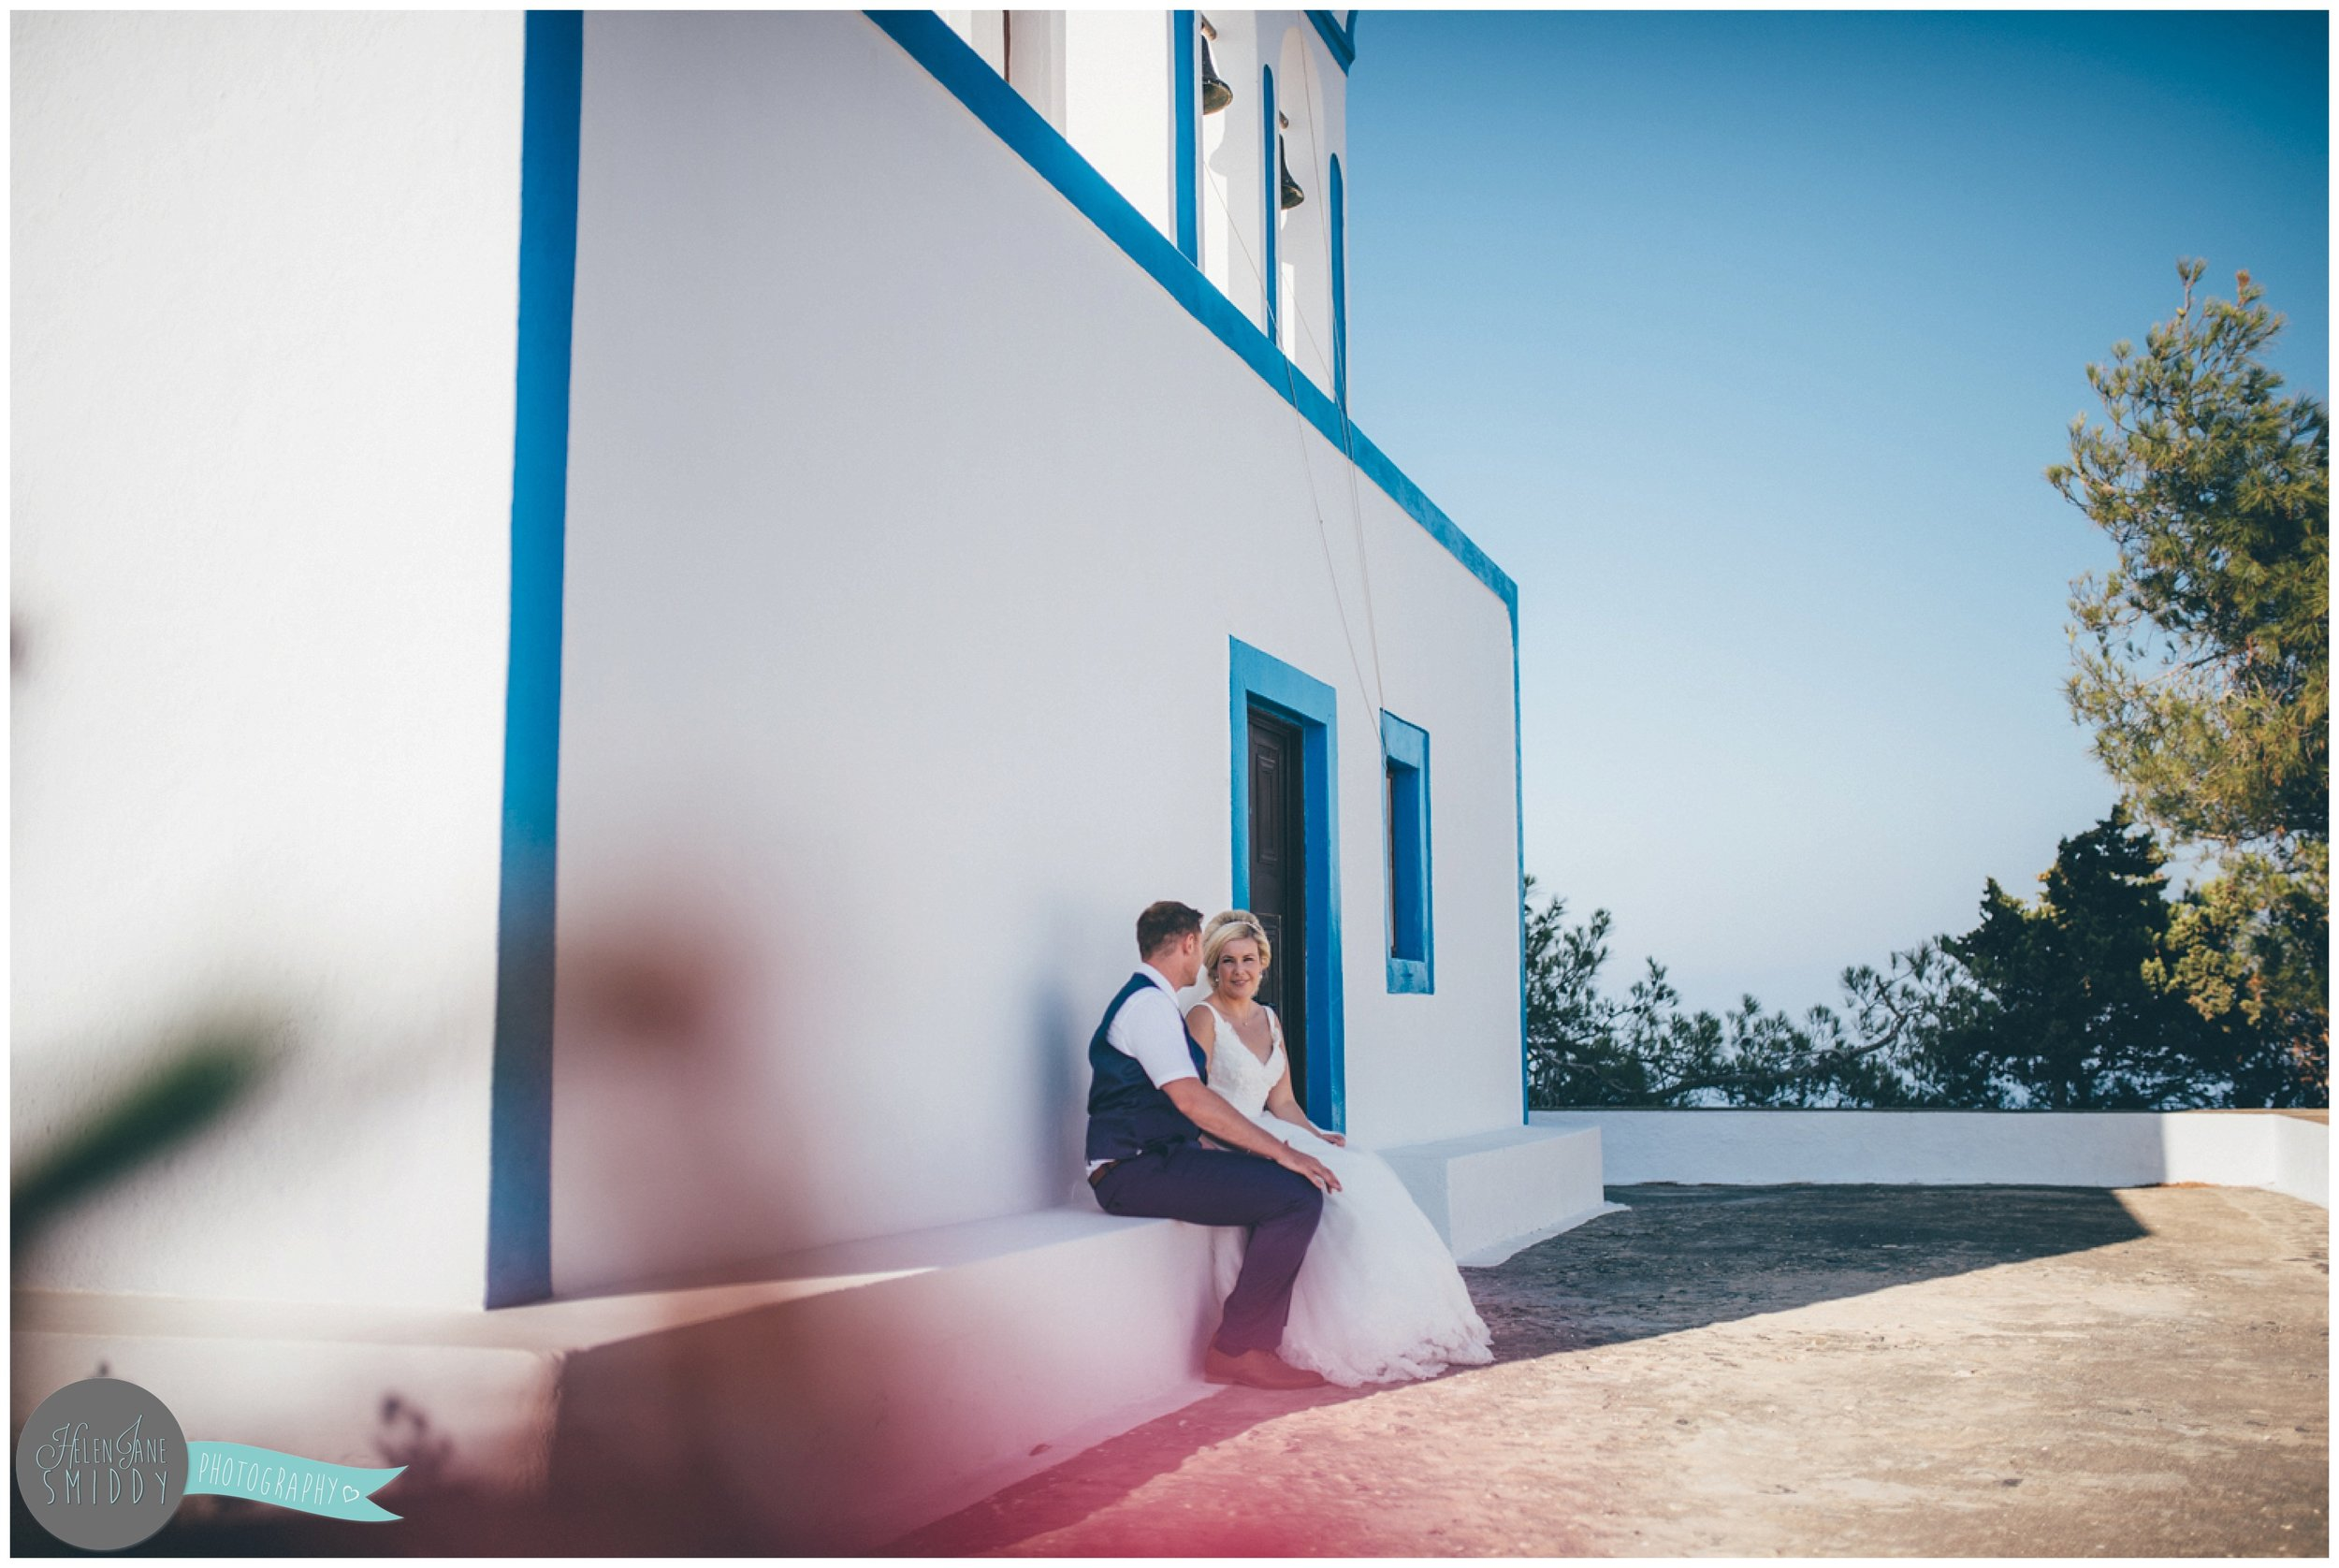 wedding-weddingphotography-photography-destination-wedding-destinationweddingphotography-destinationphotographer-santorini-greece-santoriniwedding-leciel-cheshirewedding-cheshireweddinphotographer-cheshireweddingphotography-fira-thira-travel-travelphotographer-travelphotography-bluefroofs-bride-brideandgroom-weddinggown-groom-groomsmen-suit-food-canapes